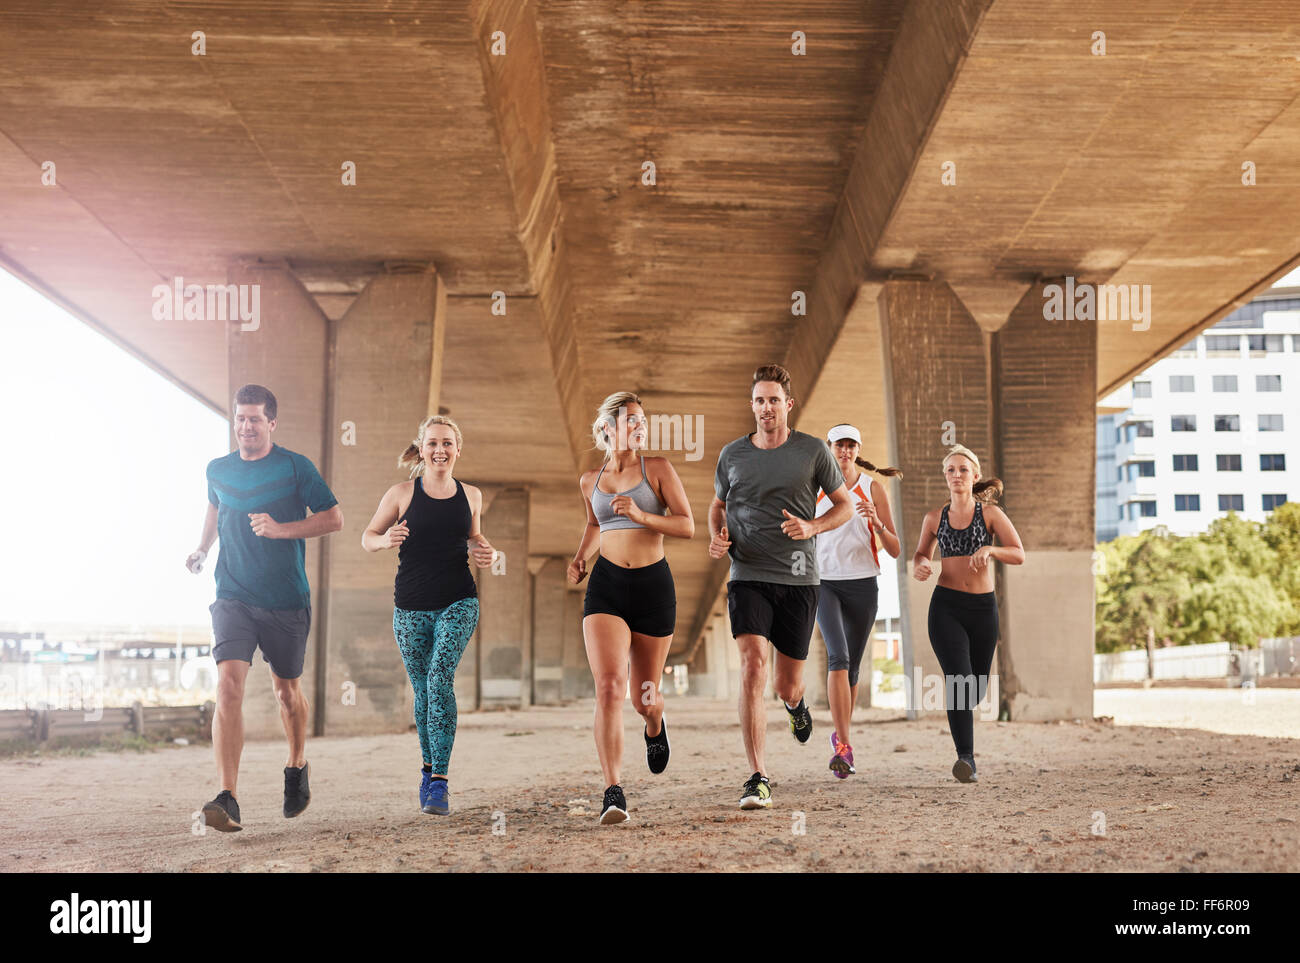 Group of athletes running on a road under bridge in the city. Young men and women jogging, training together in - Stock Image